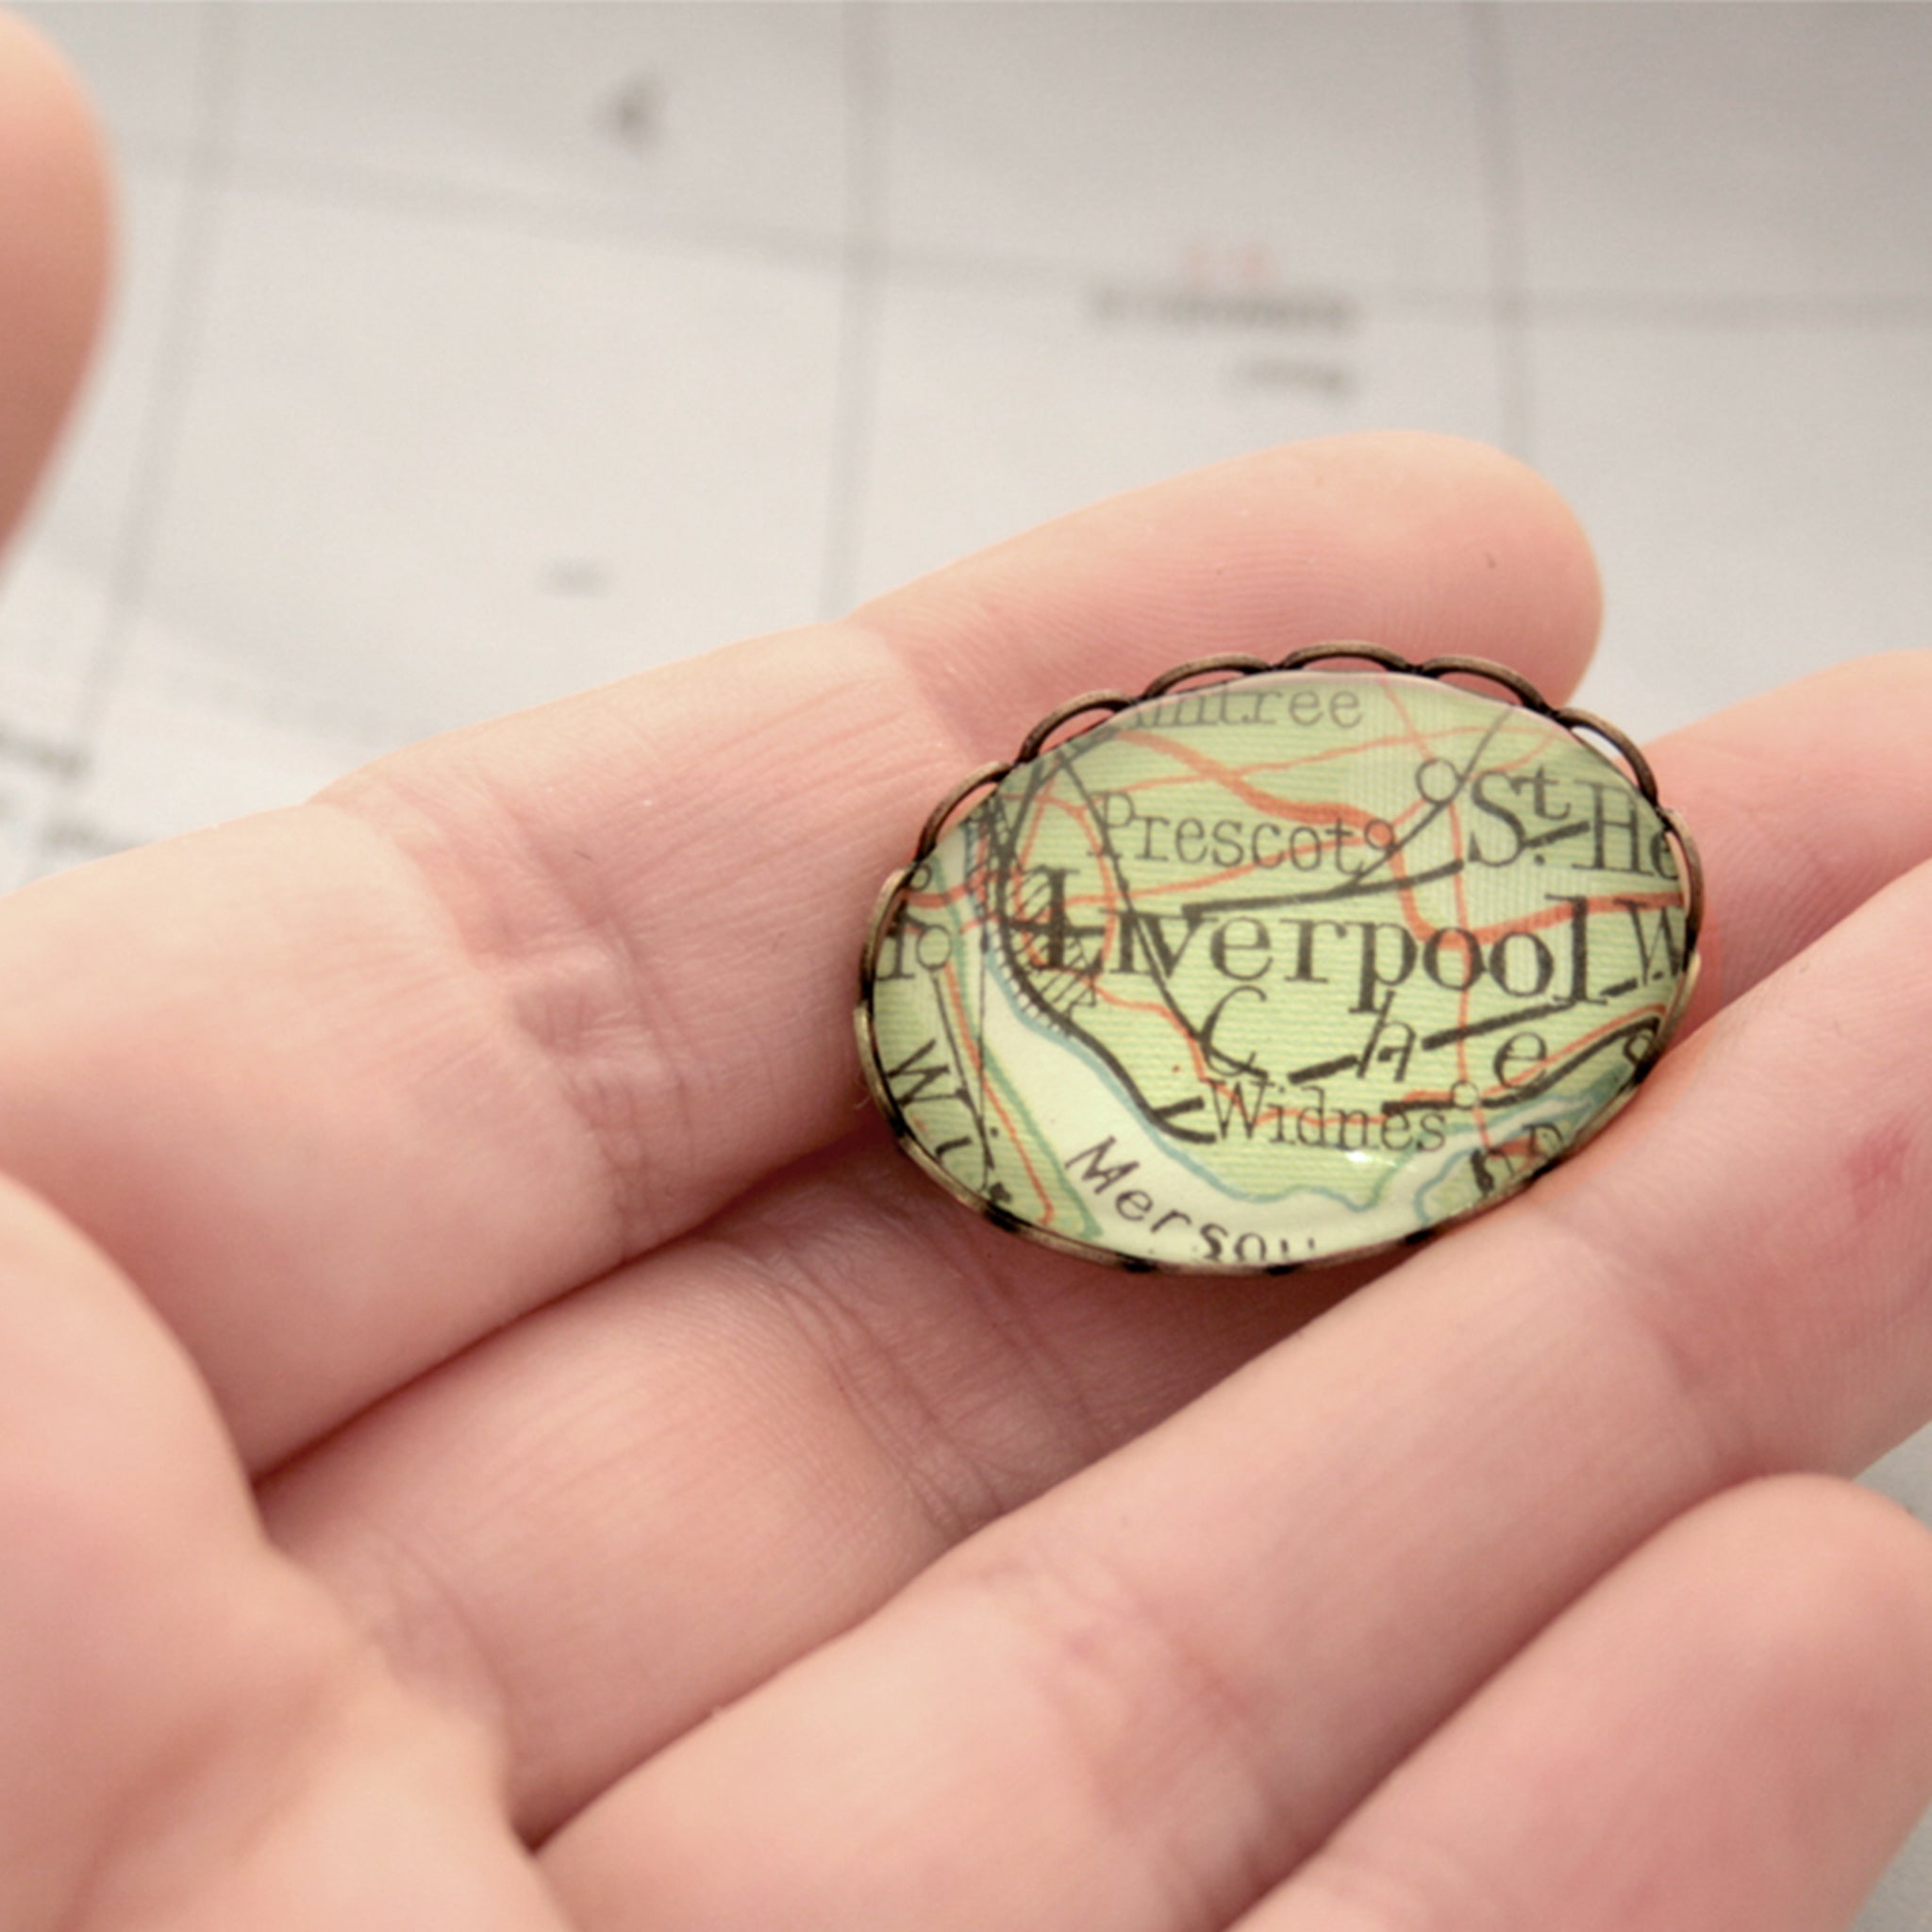 Antique Bronze brooch featuring map of Liverpool lying on hand